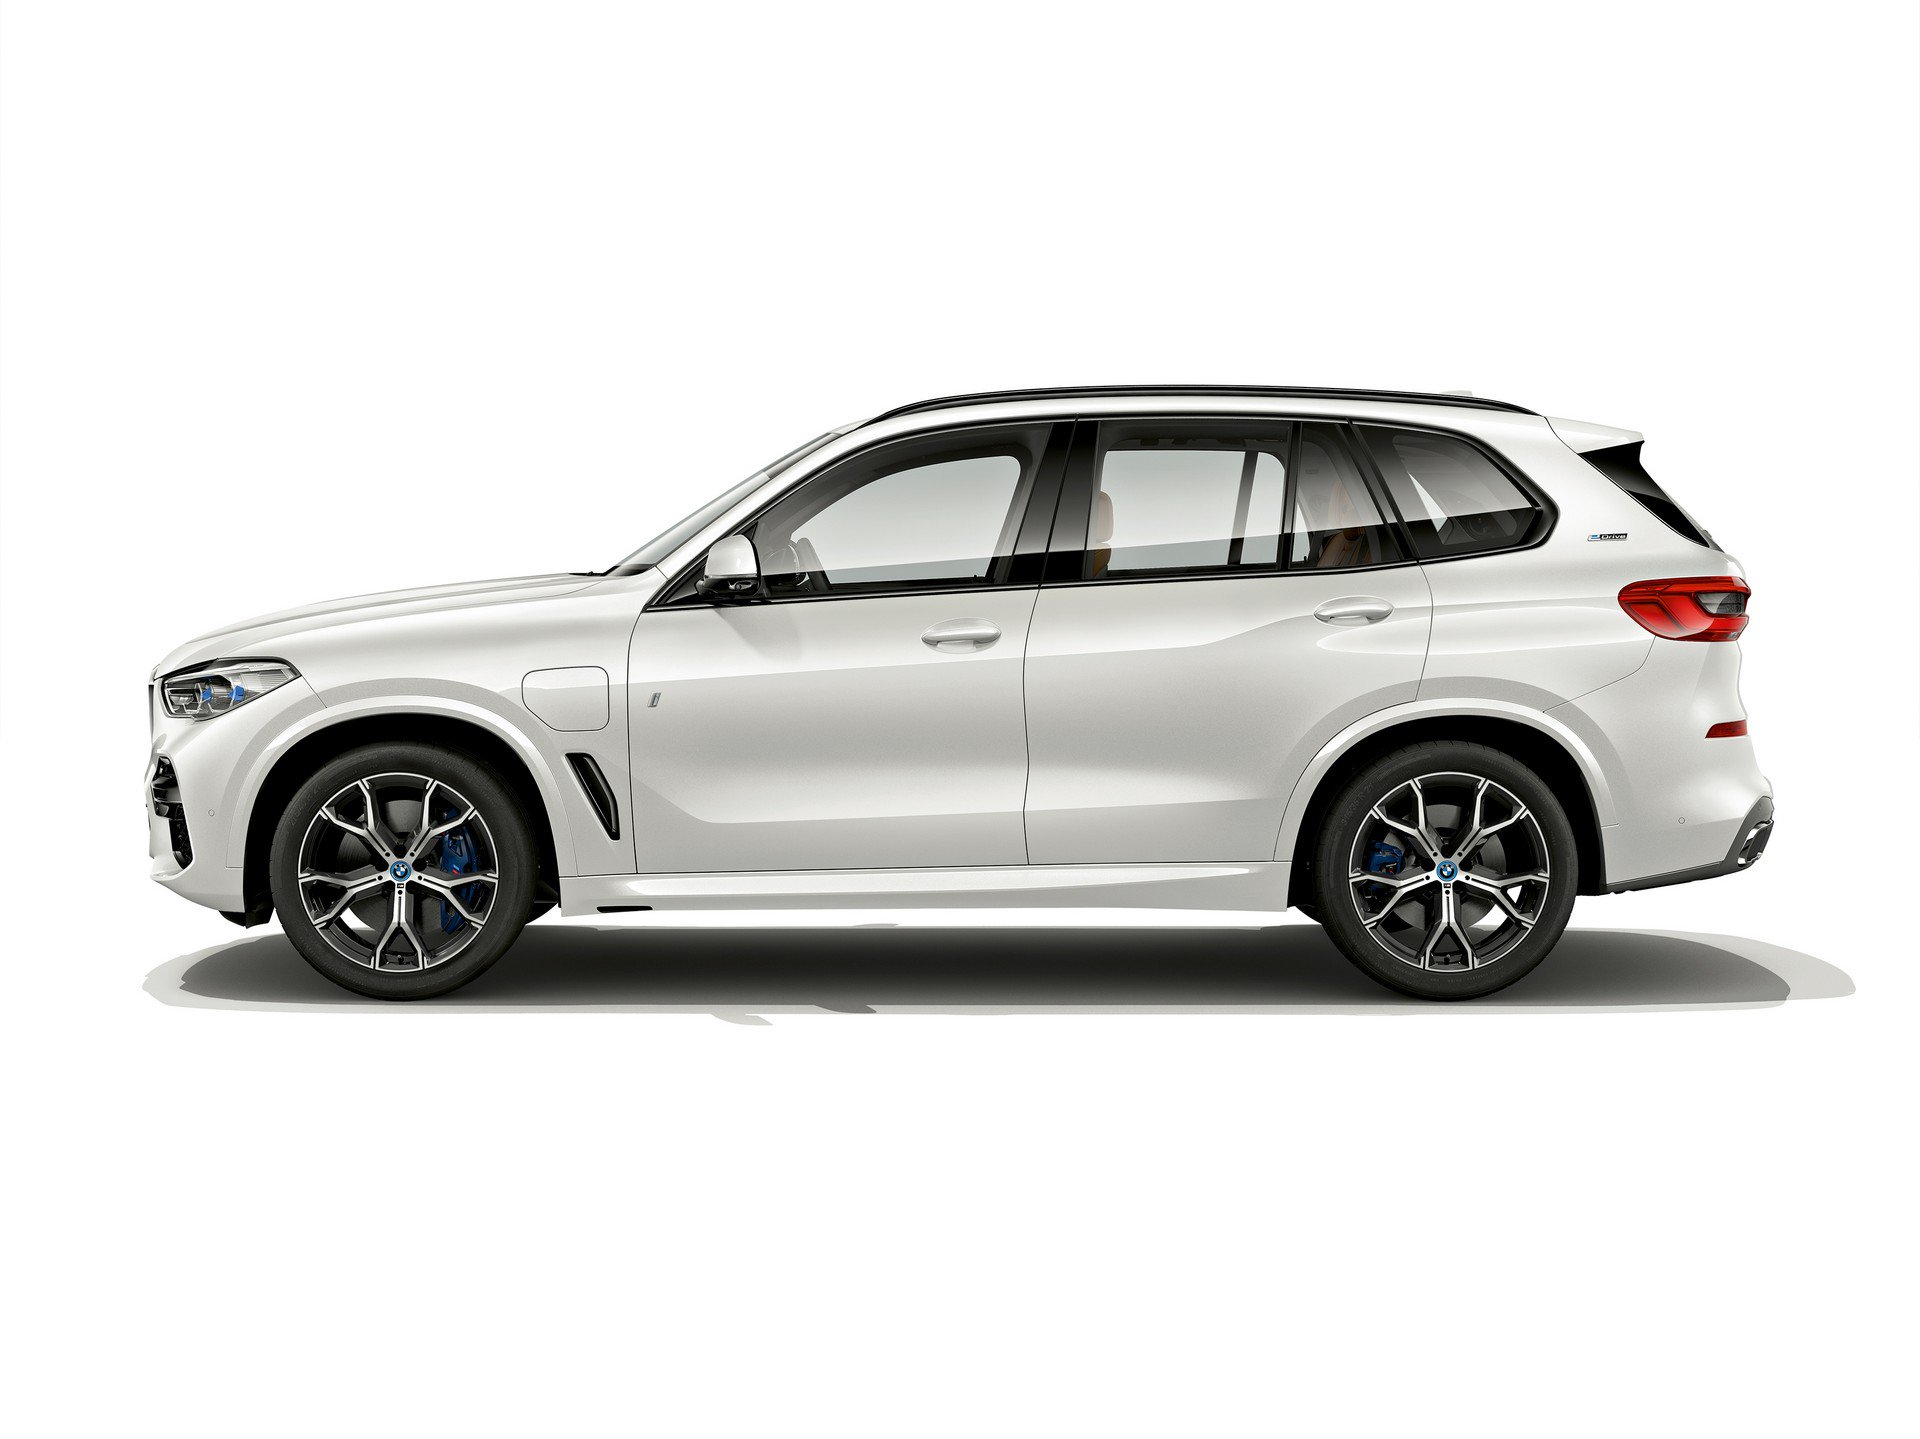 67ec7f55-bmw-x5-xdrive45e-iperformance-2.jpg